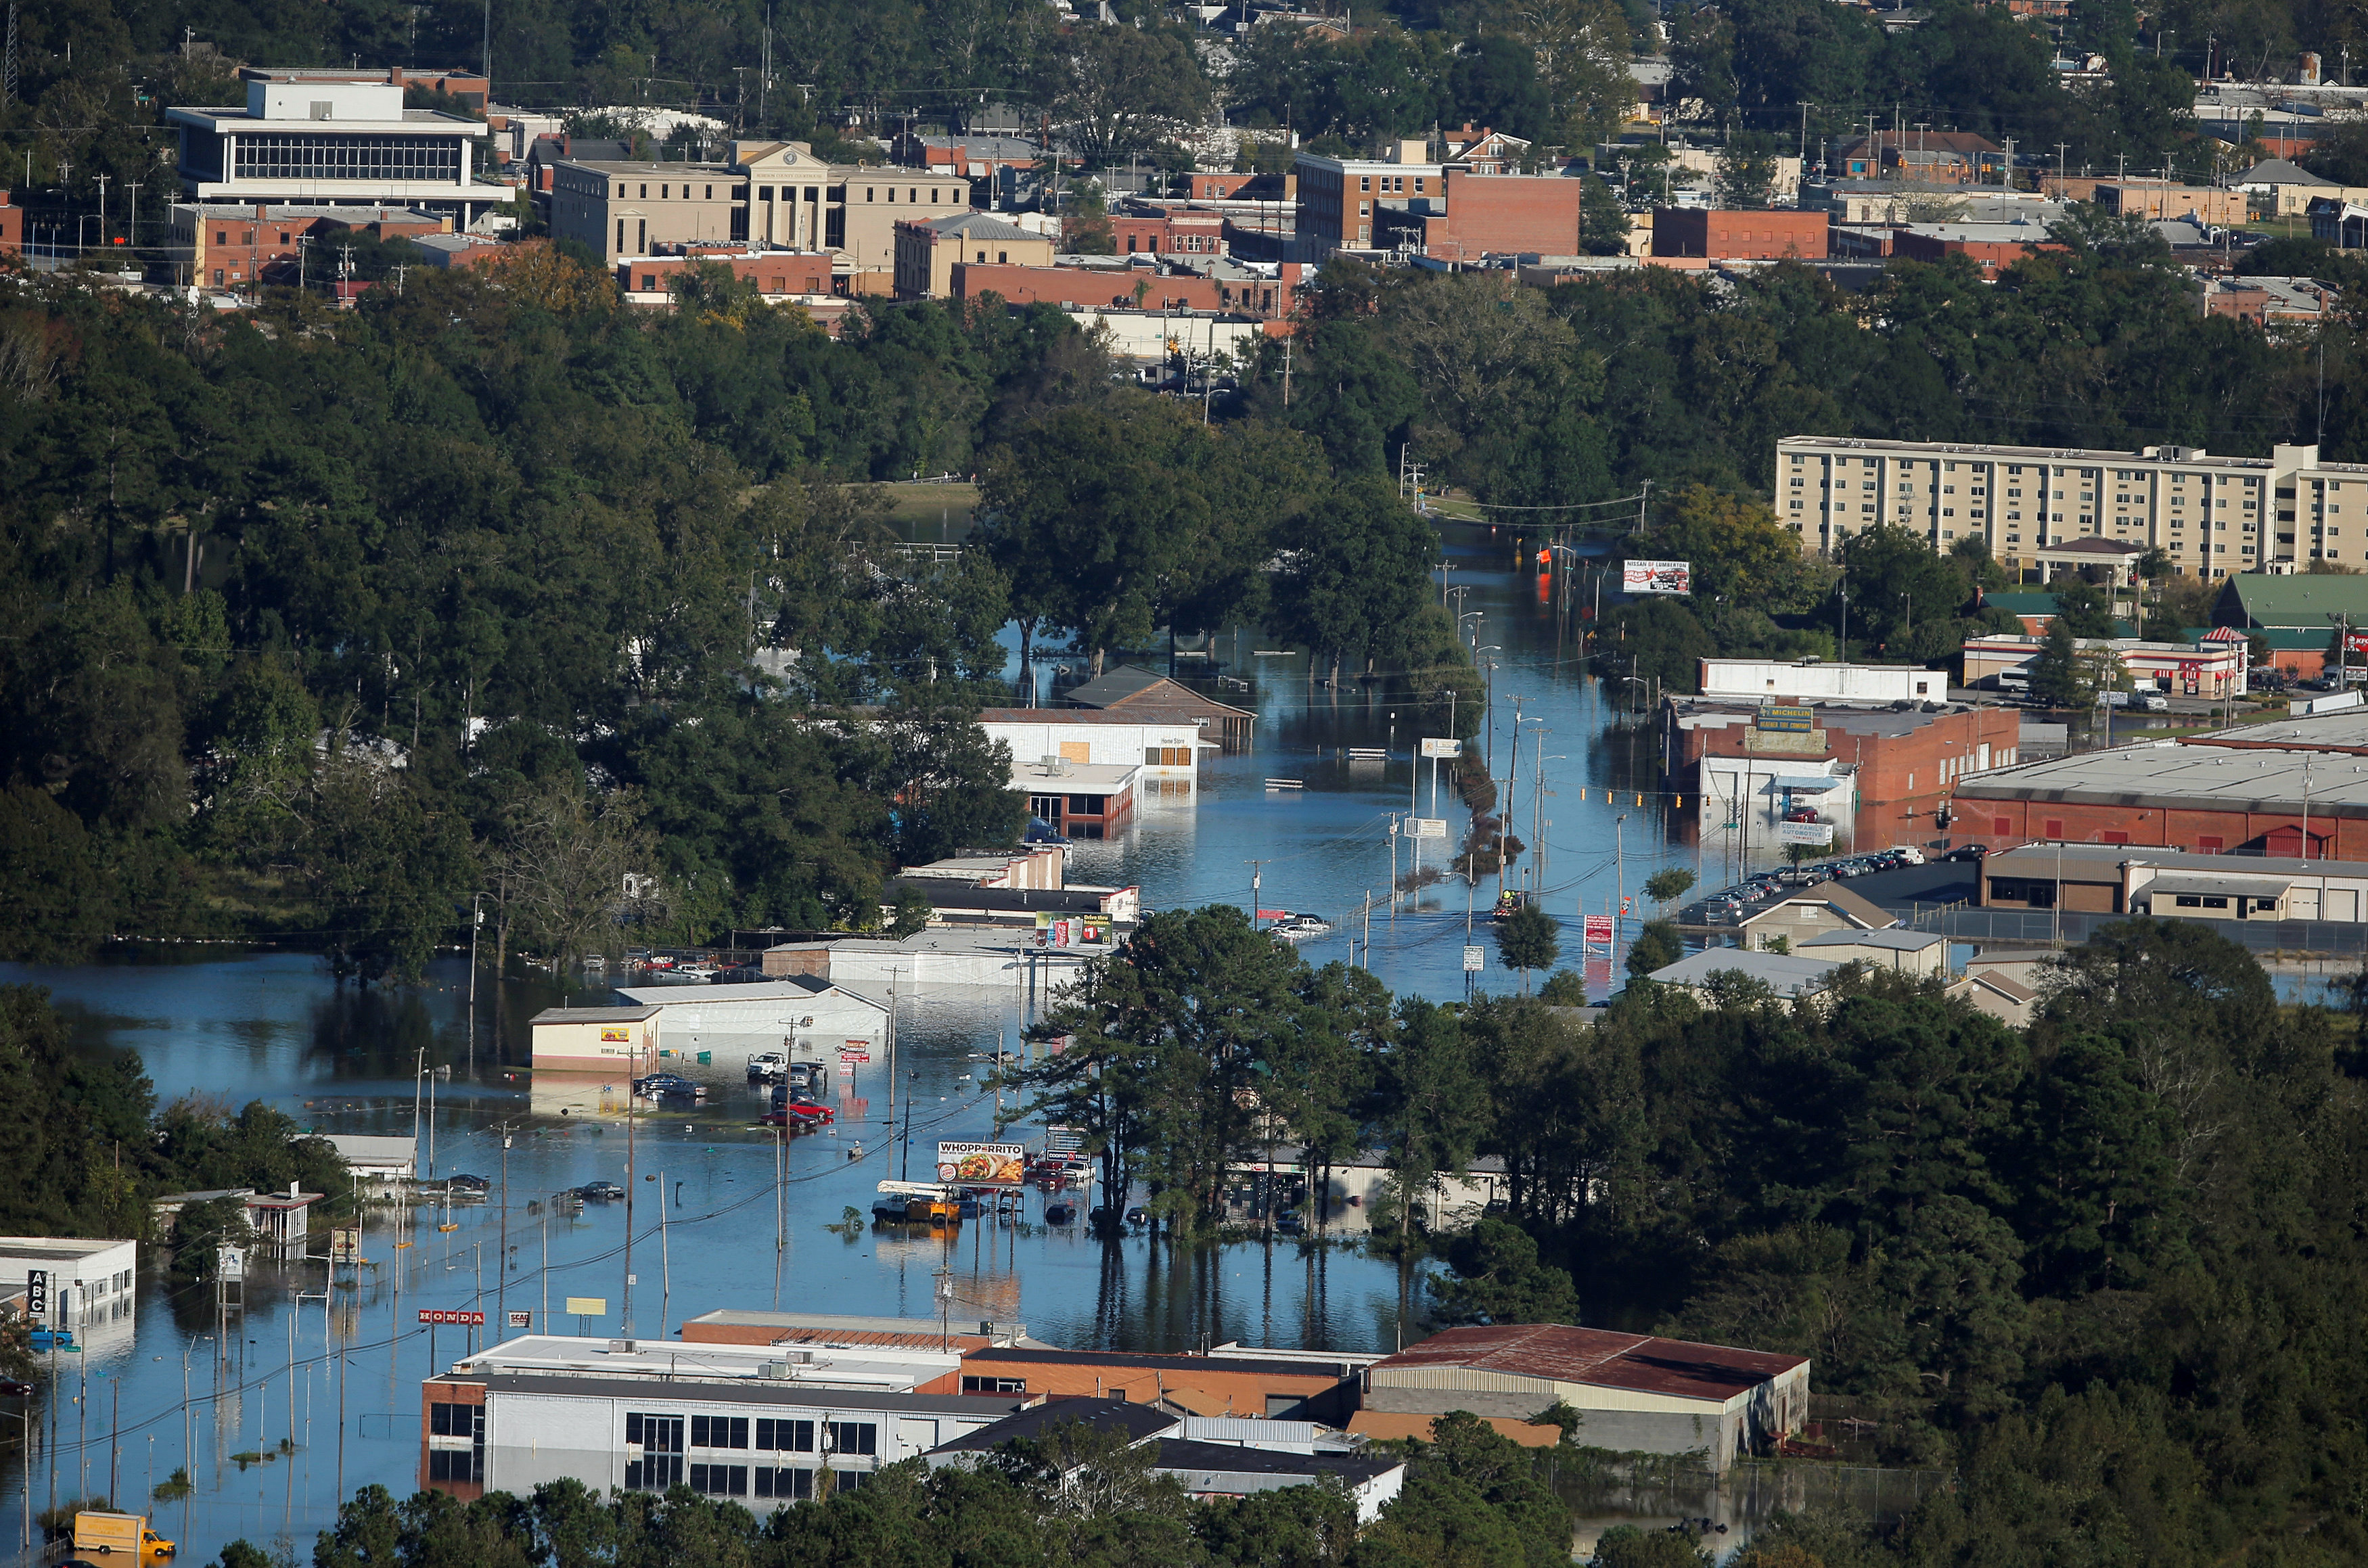 An aerial view shows flood waters after Hurricane Matthew in Lumberton, North Carolina